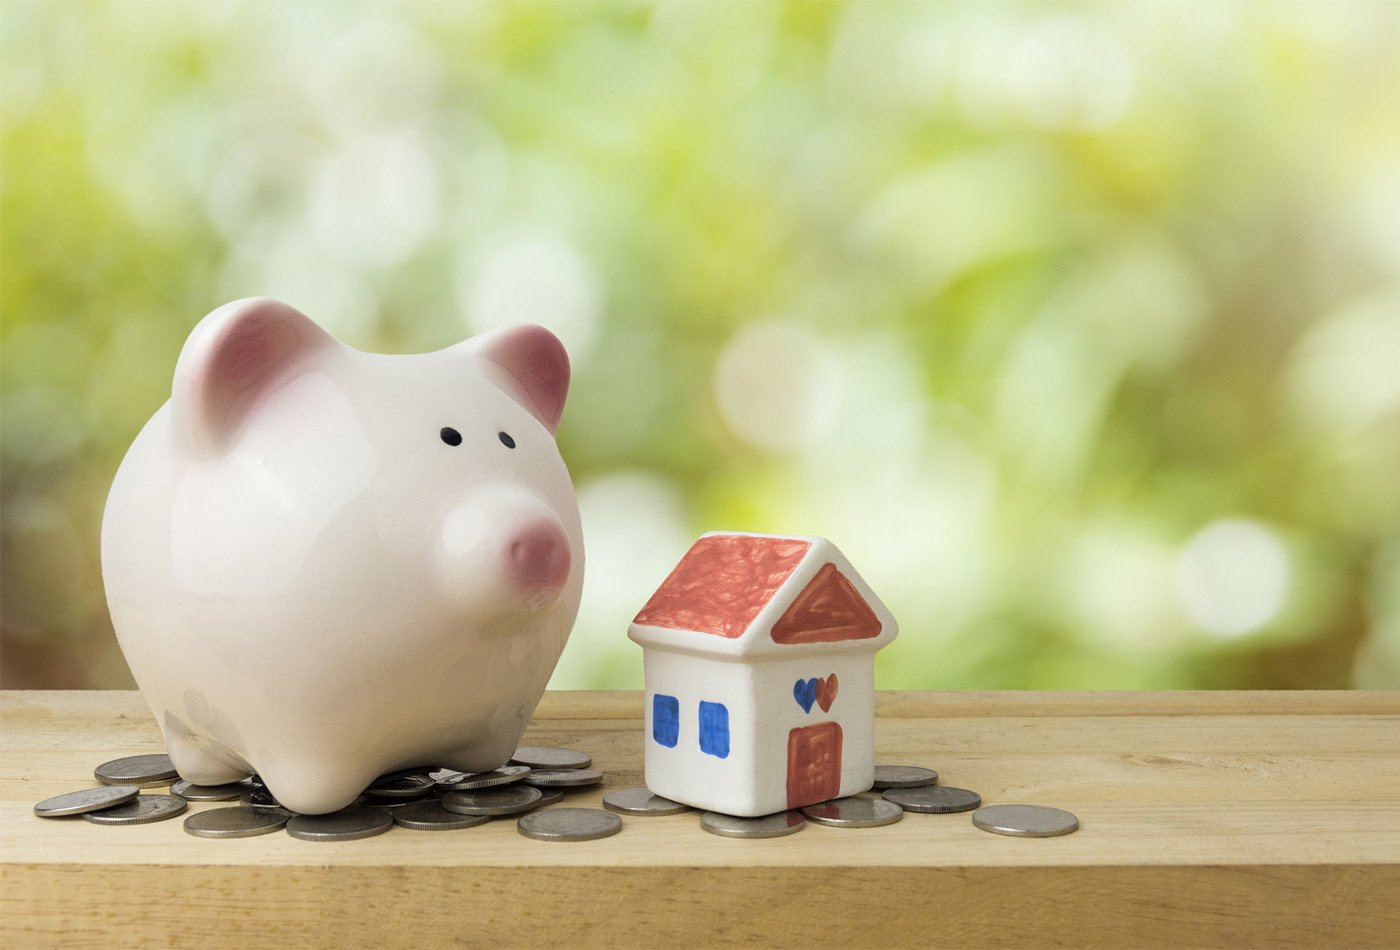 piggy bank save money for house , saving money concept